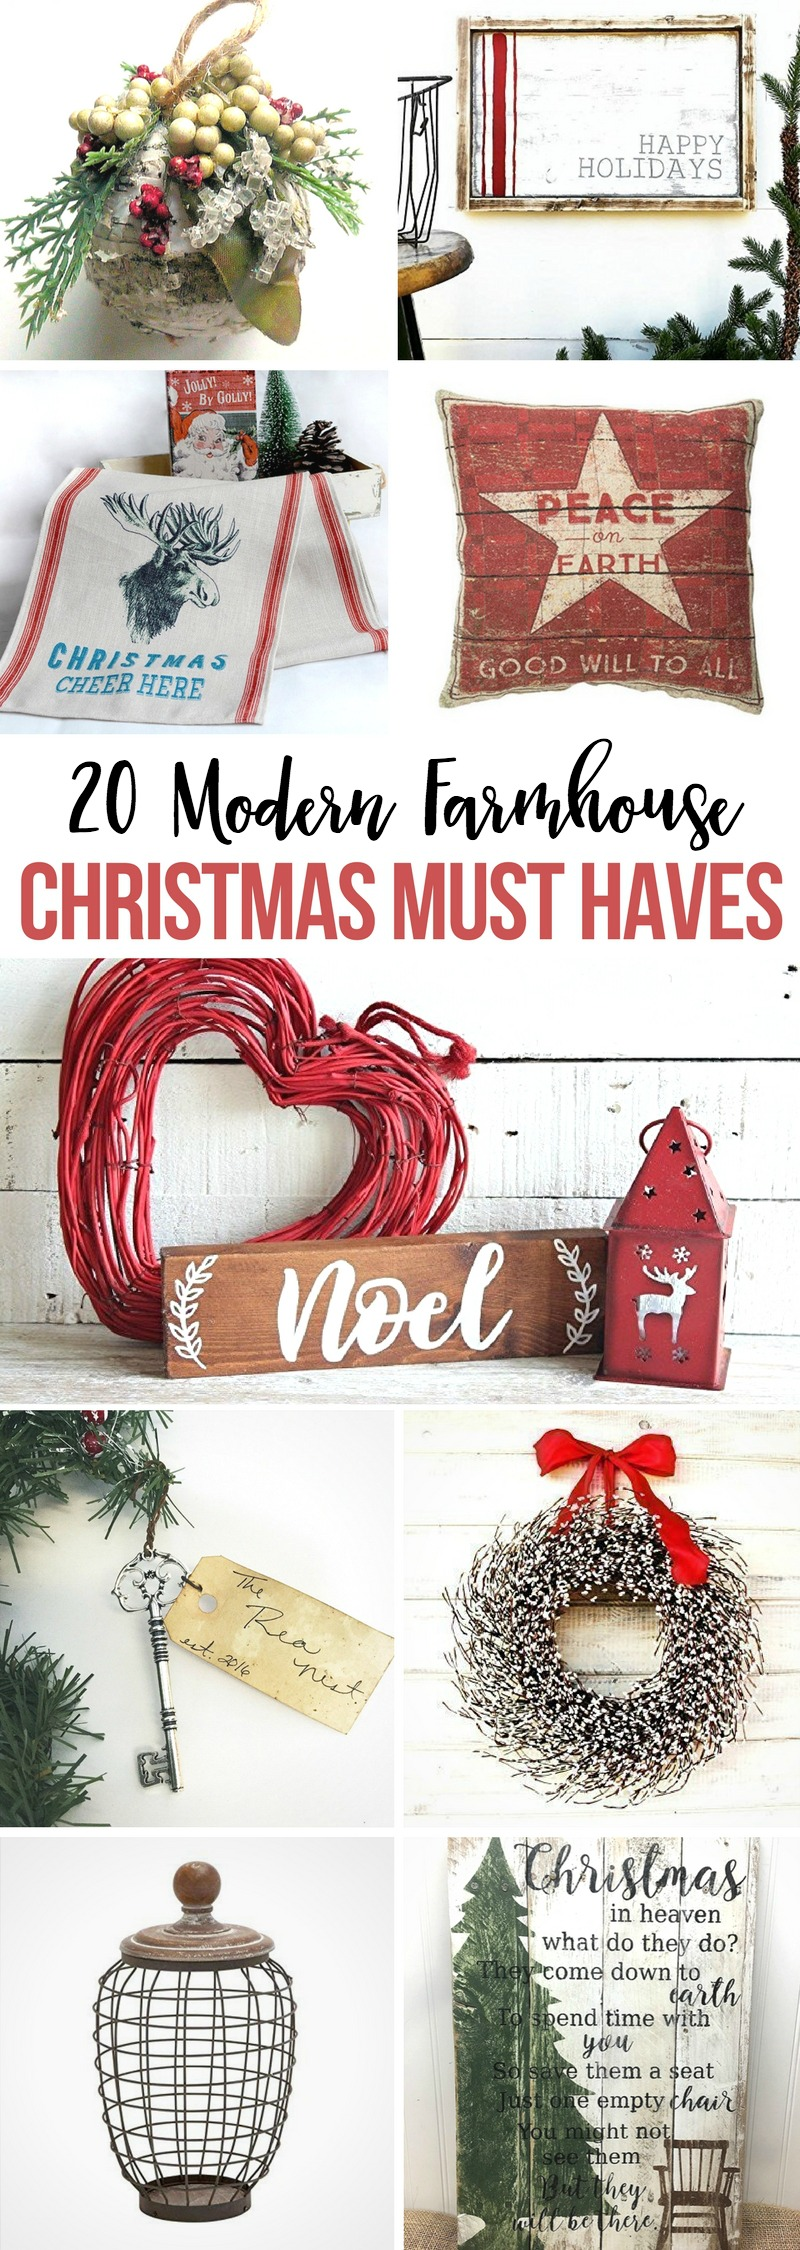 20 Modern Farmhouse Christmas Must Haves